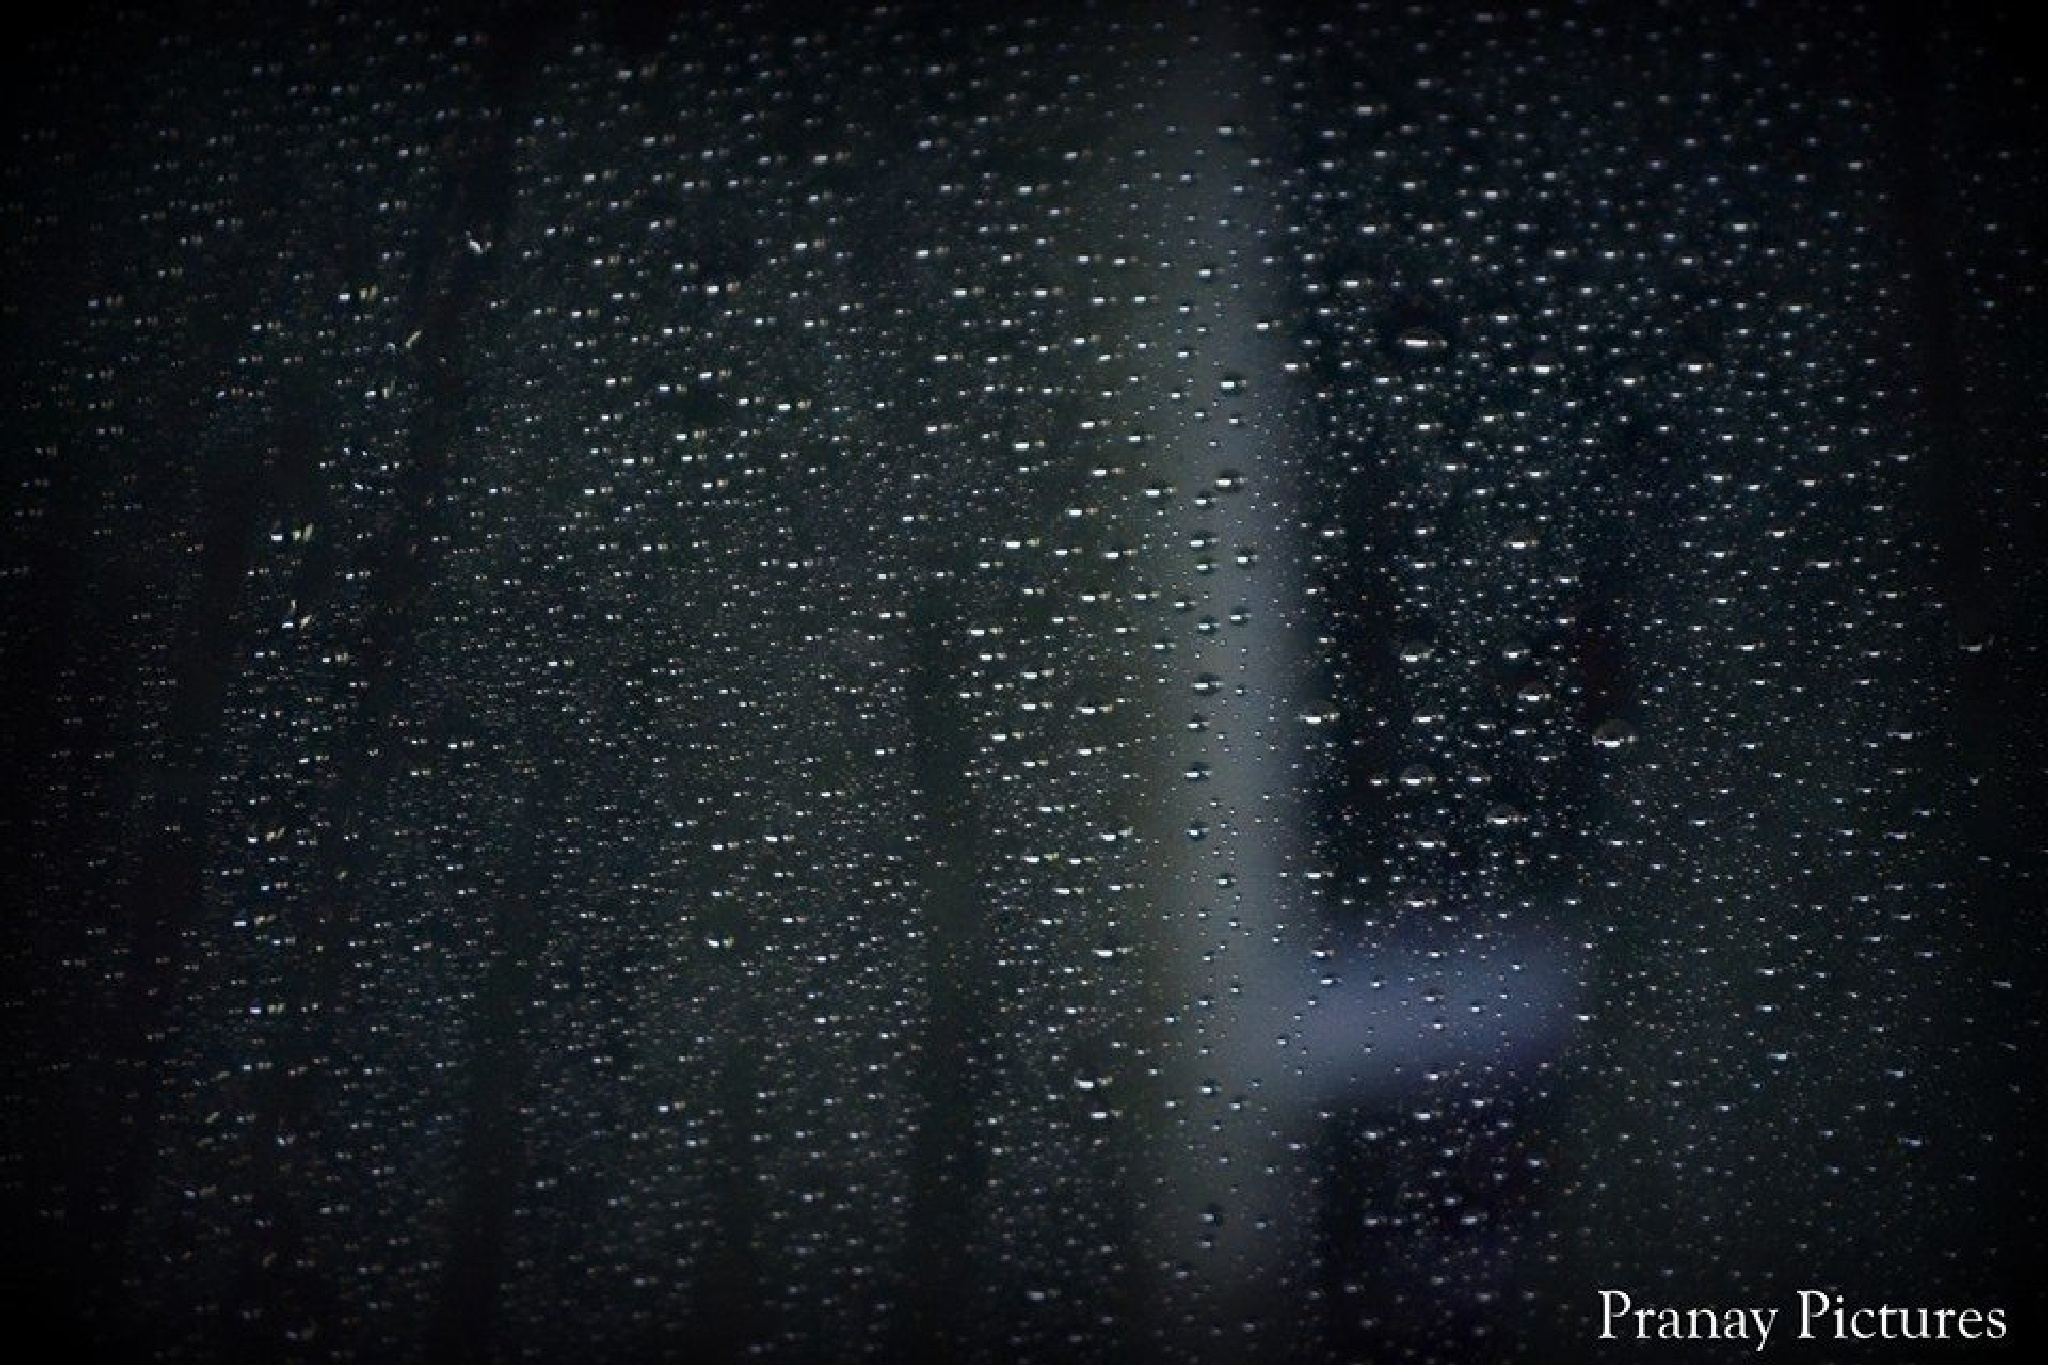 Water drops on a car's Wind Shield  by Pranay Pictures